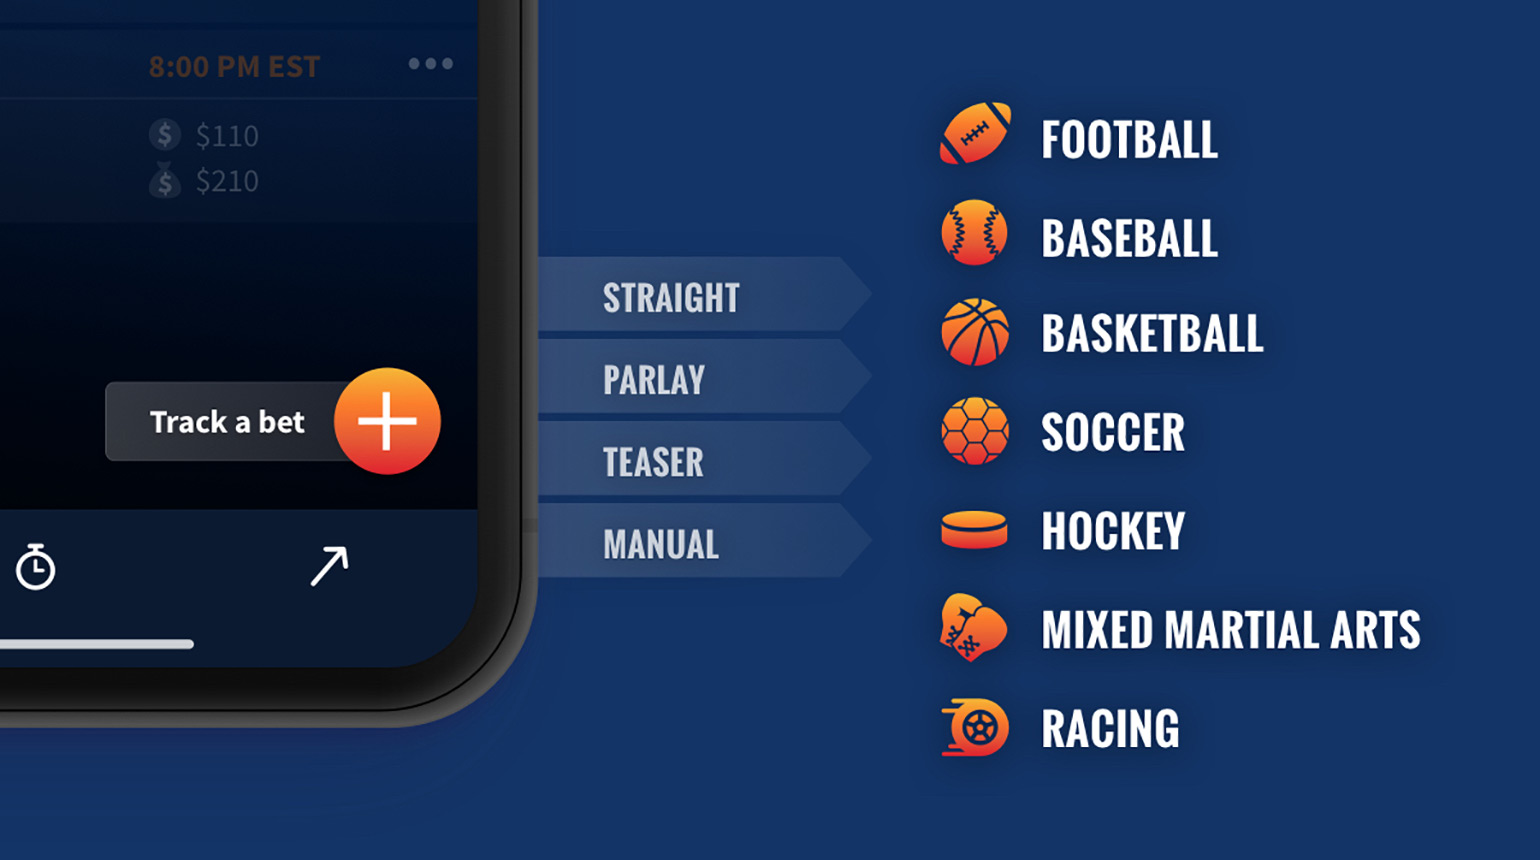 UI components to track straights, parlays, teasers, and your own custom bets across different sports.